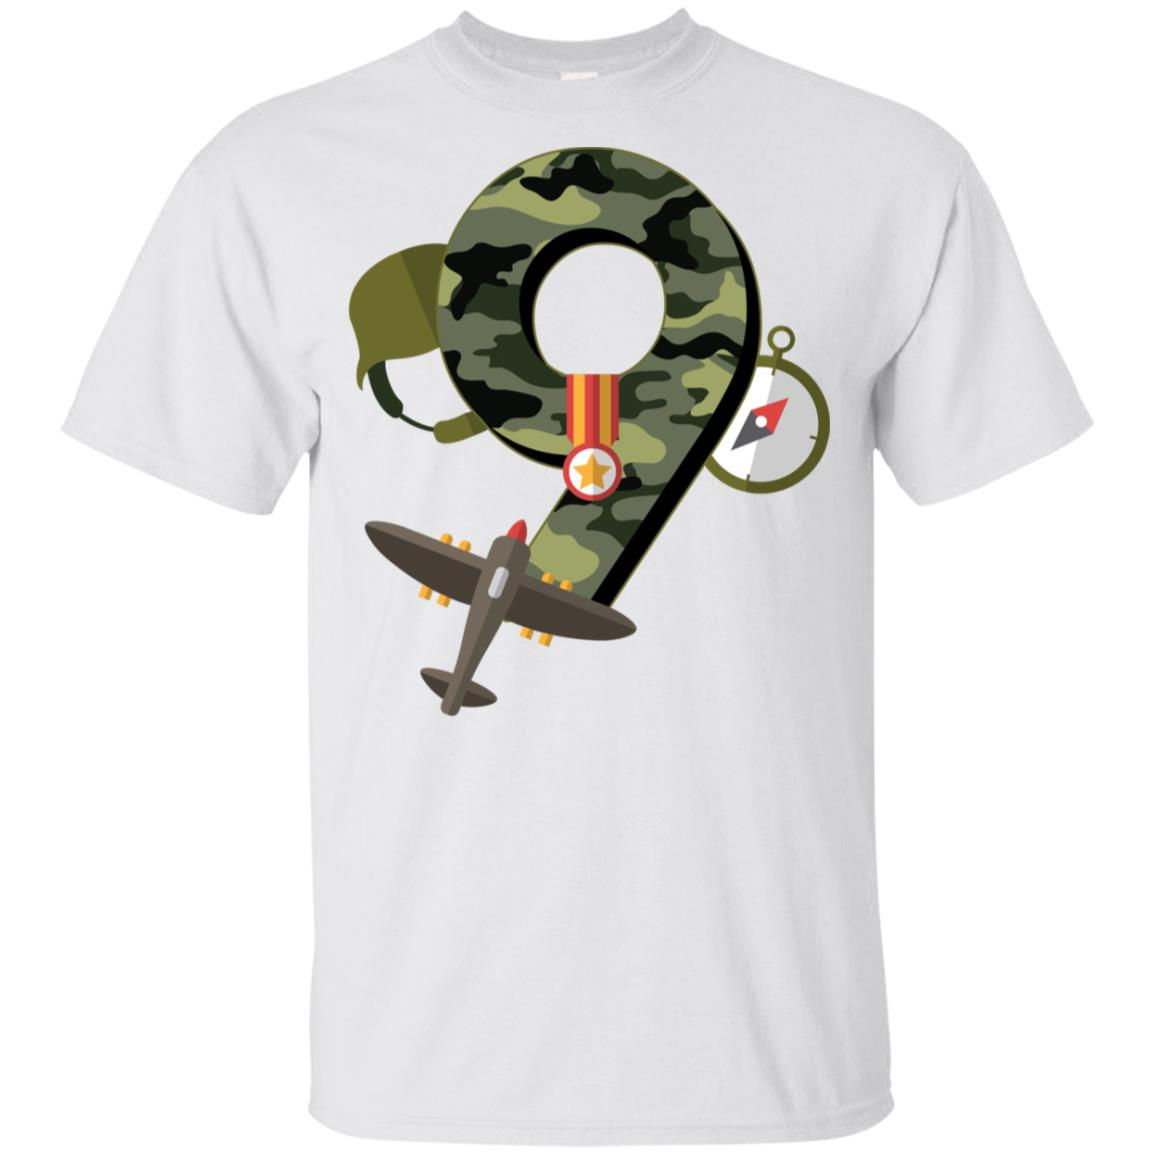 9th Birthday Camouflage Army Soldier 9 Y Youth Short Sleeve